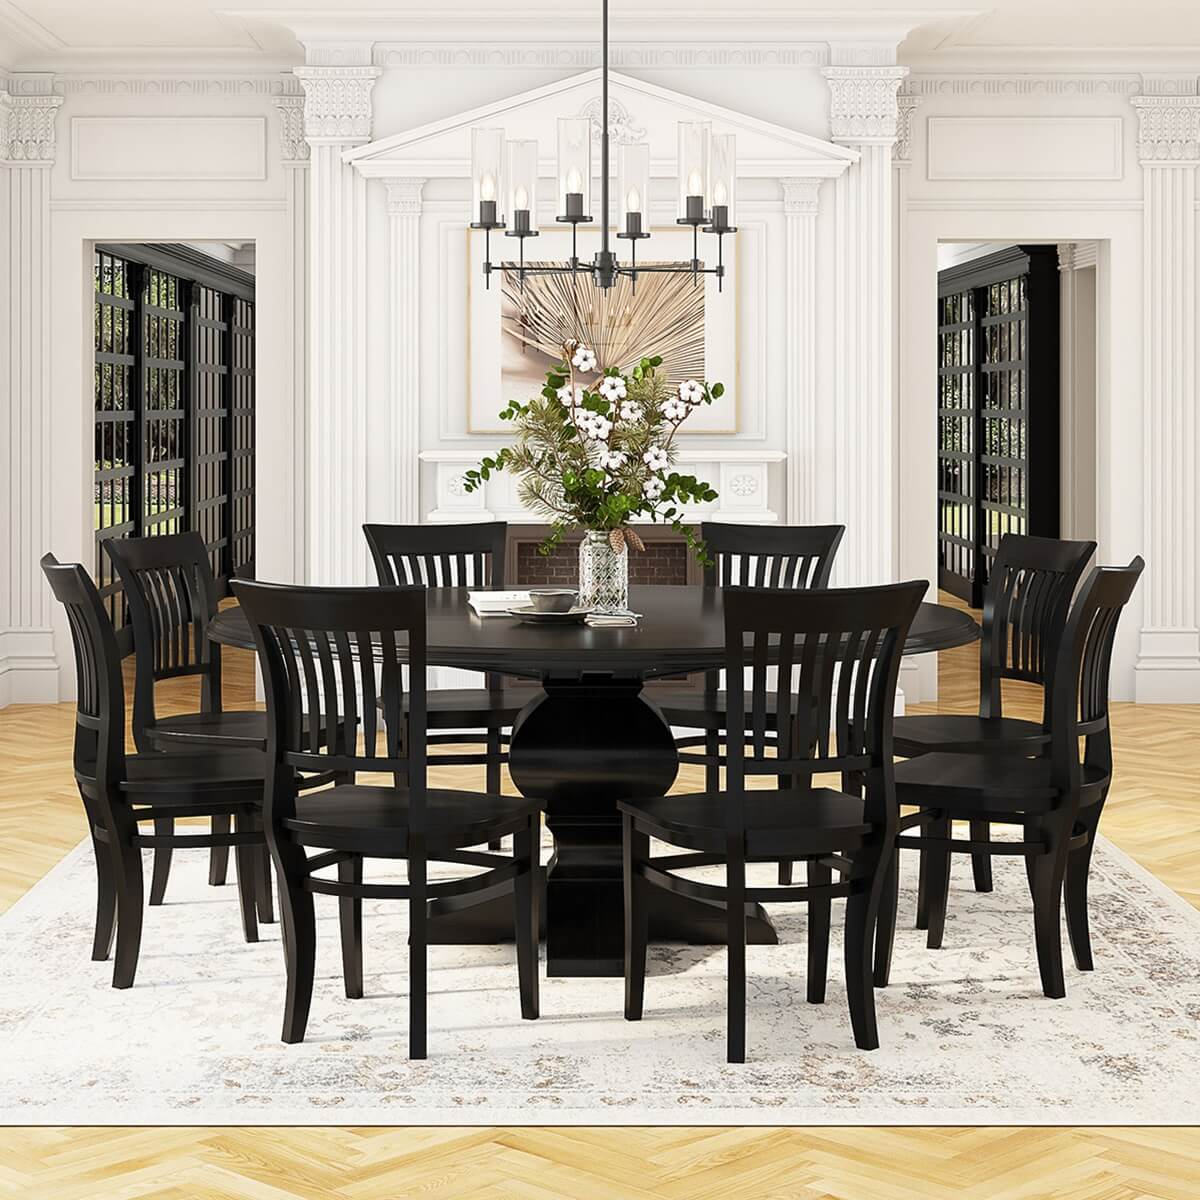 sierra-nevada-large-round-rustic-solid-wood-dining-  sc 1 st  Sierra Living Concepts & Rustic Dining Table and Chair Sets | Sierra Living Concepts